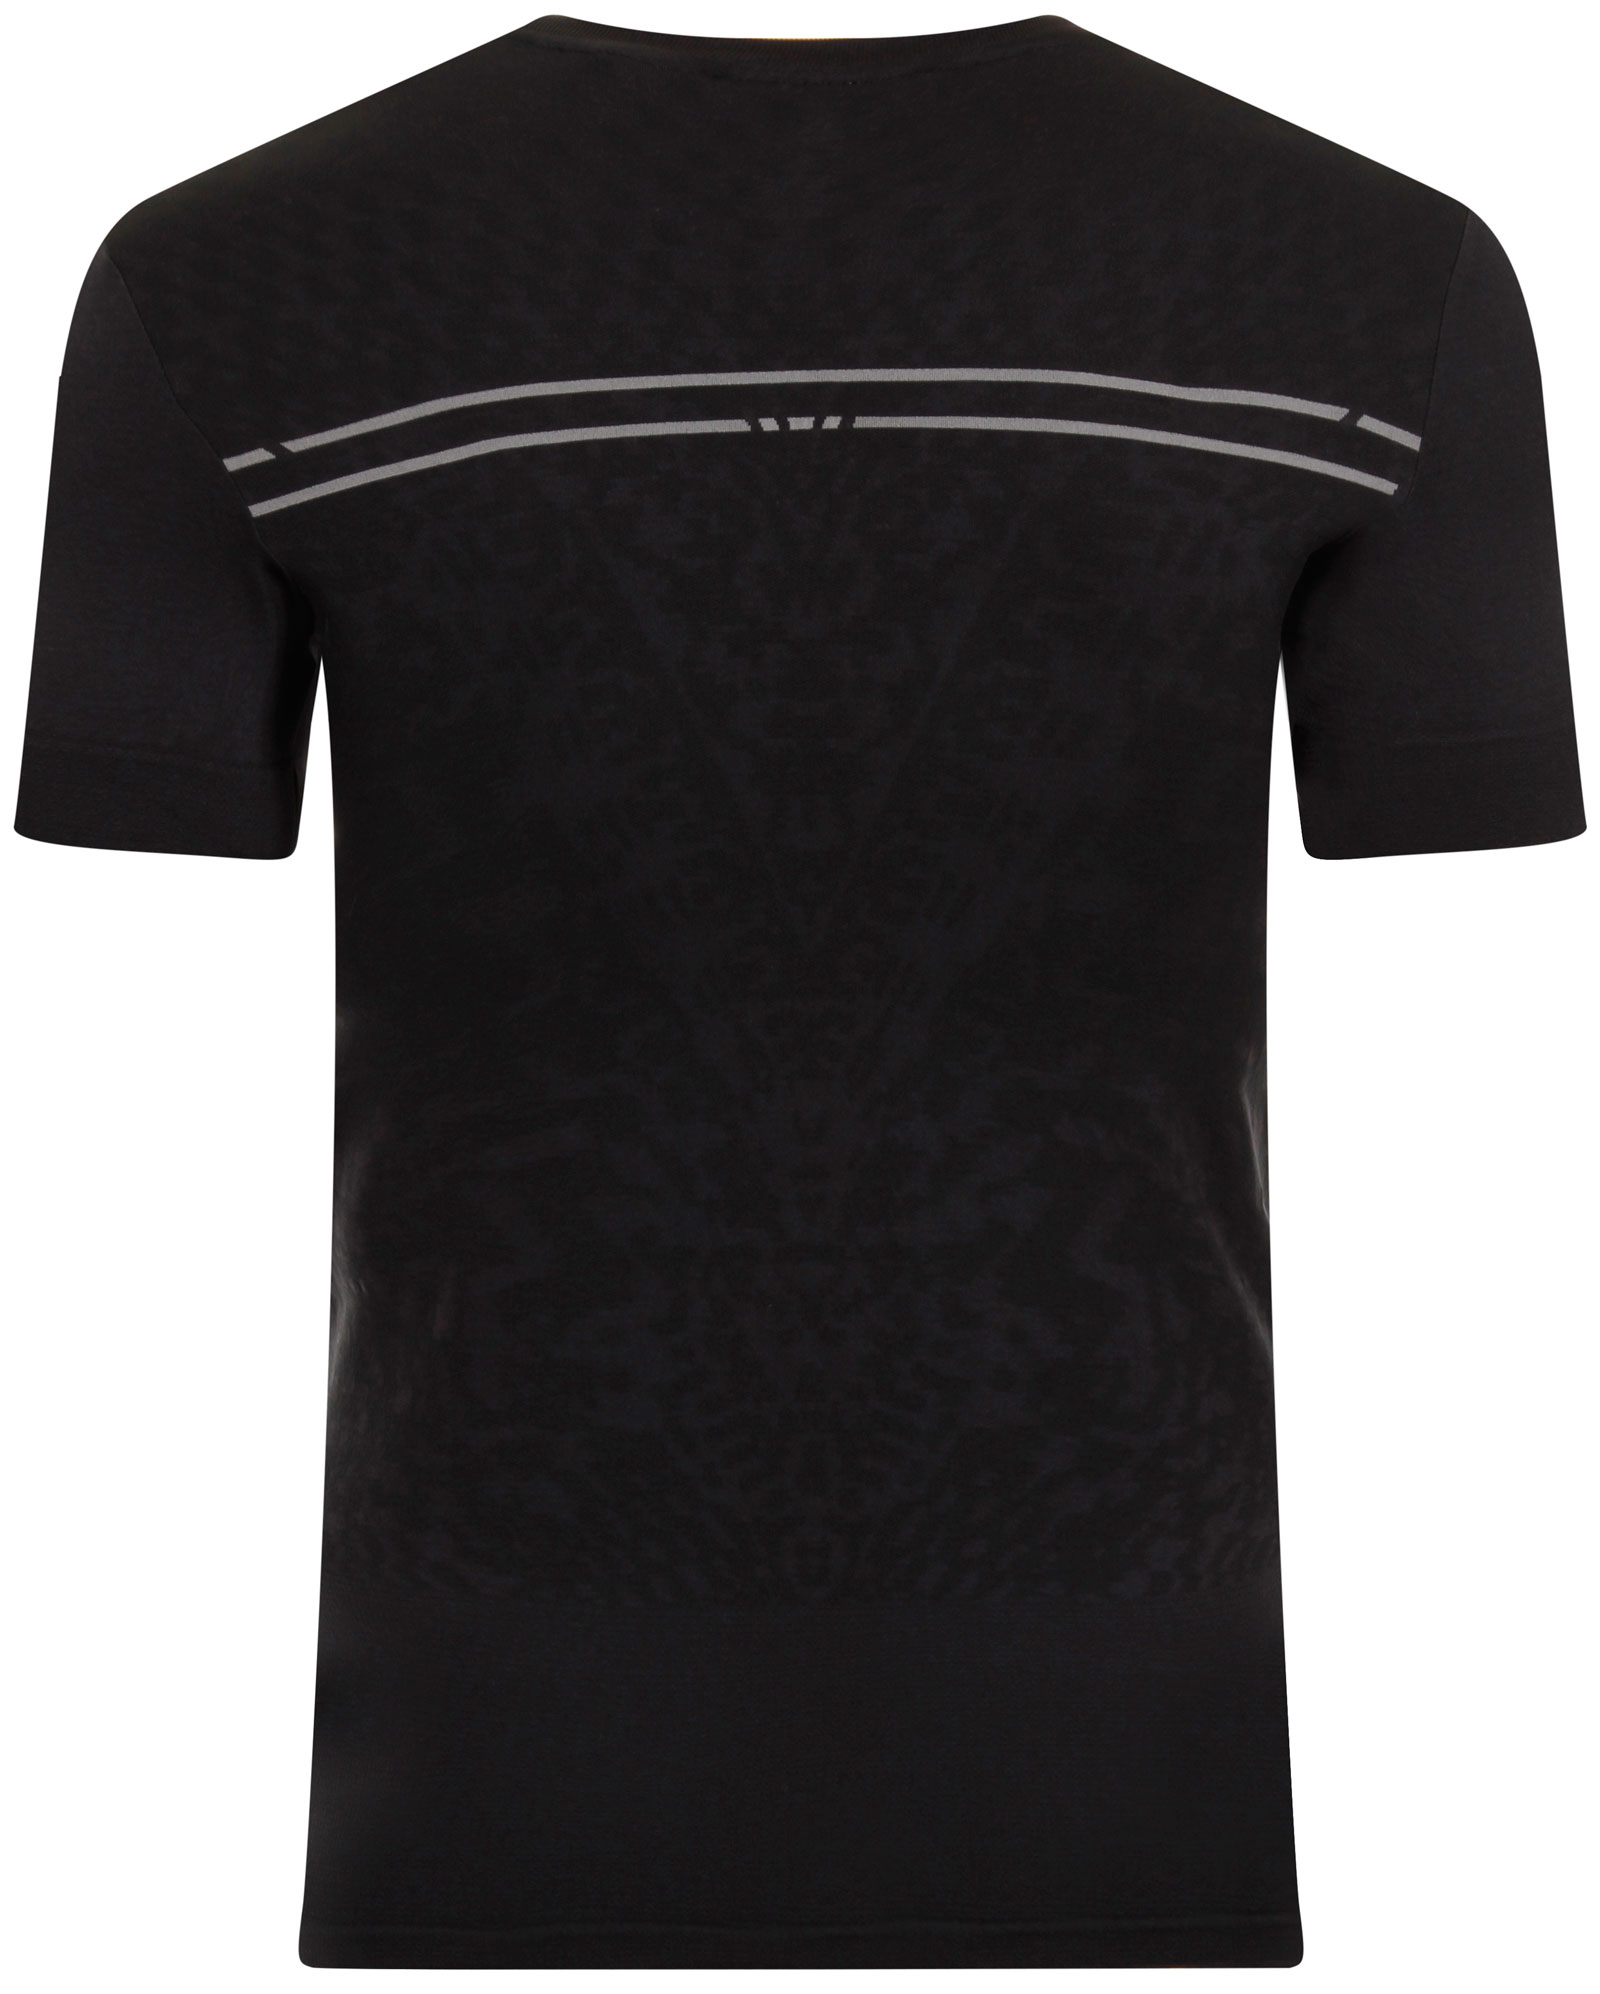 adidas-Mens-Supernova-Primeknit-s-s-M-Short-Sleeve-Fitted-Running-Top-Size-s thumbnail 2